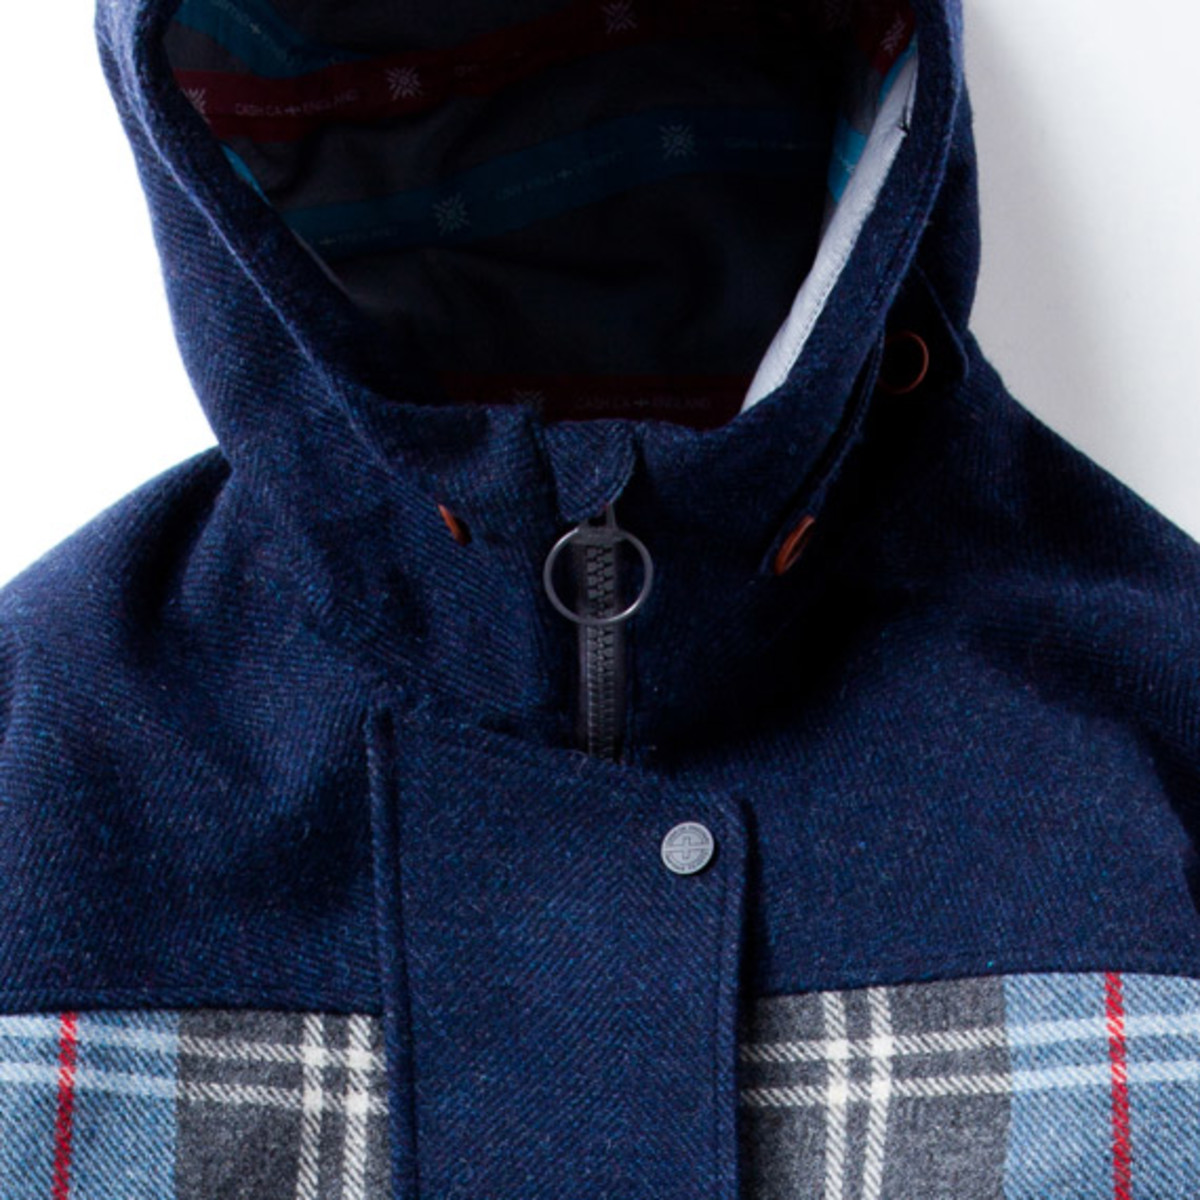 cash-ca-fall-winter-2012-apparel-collection-04